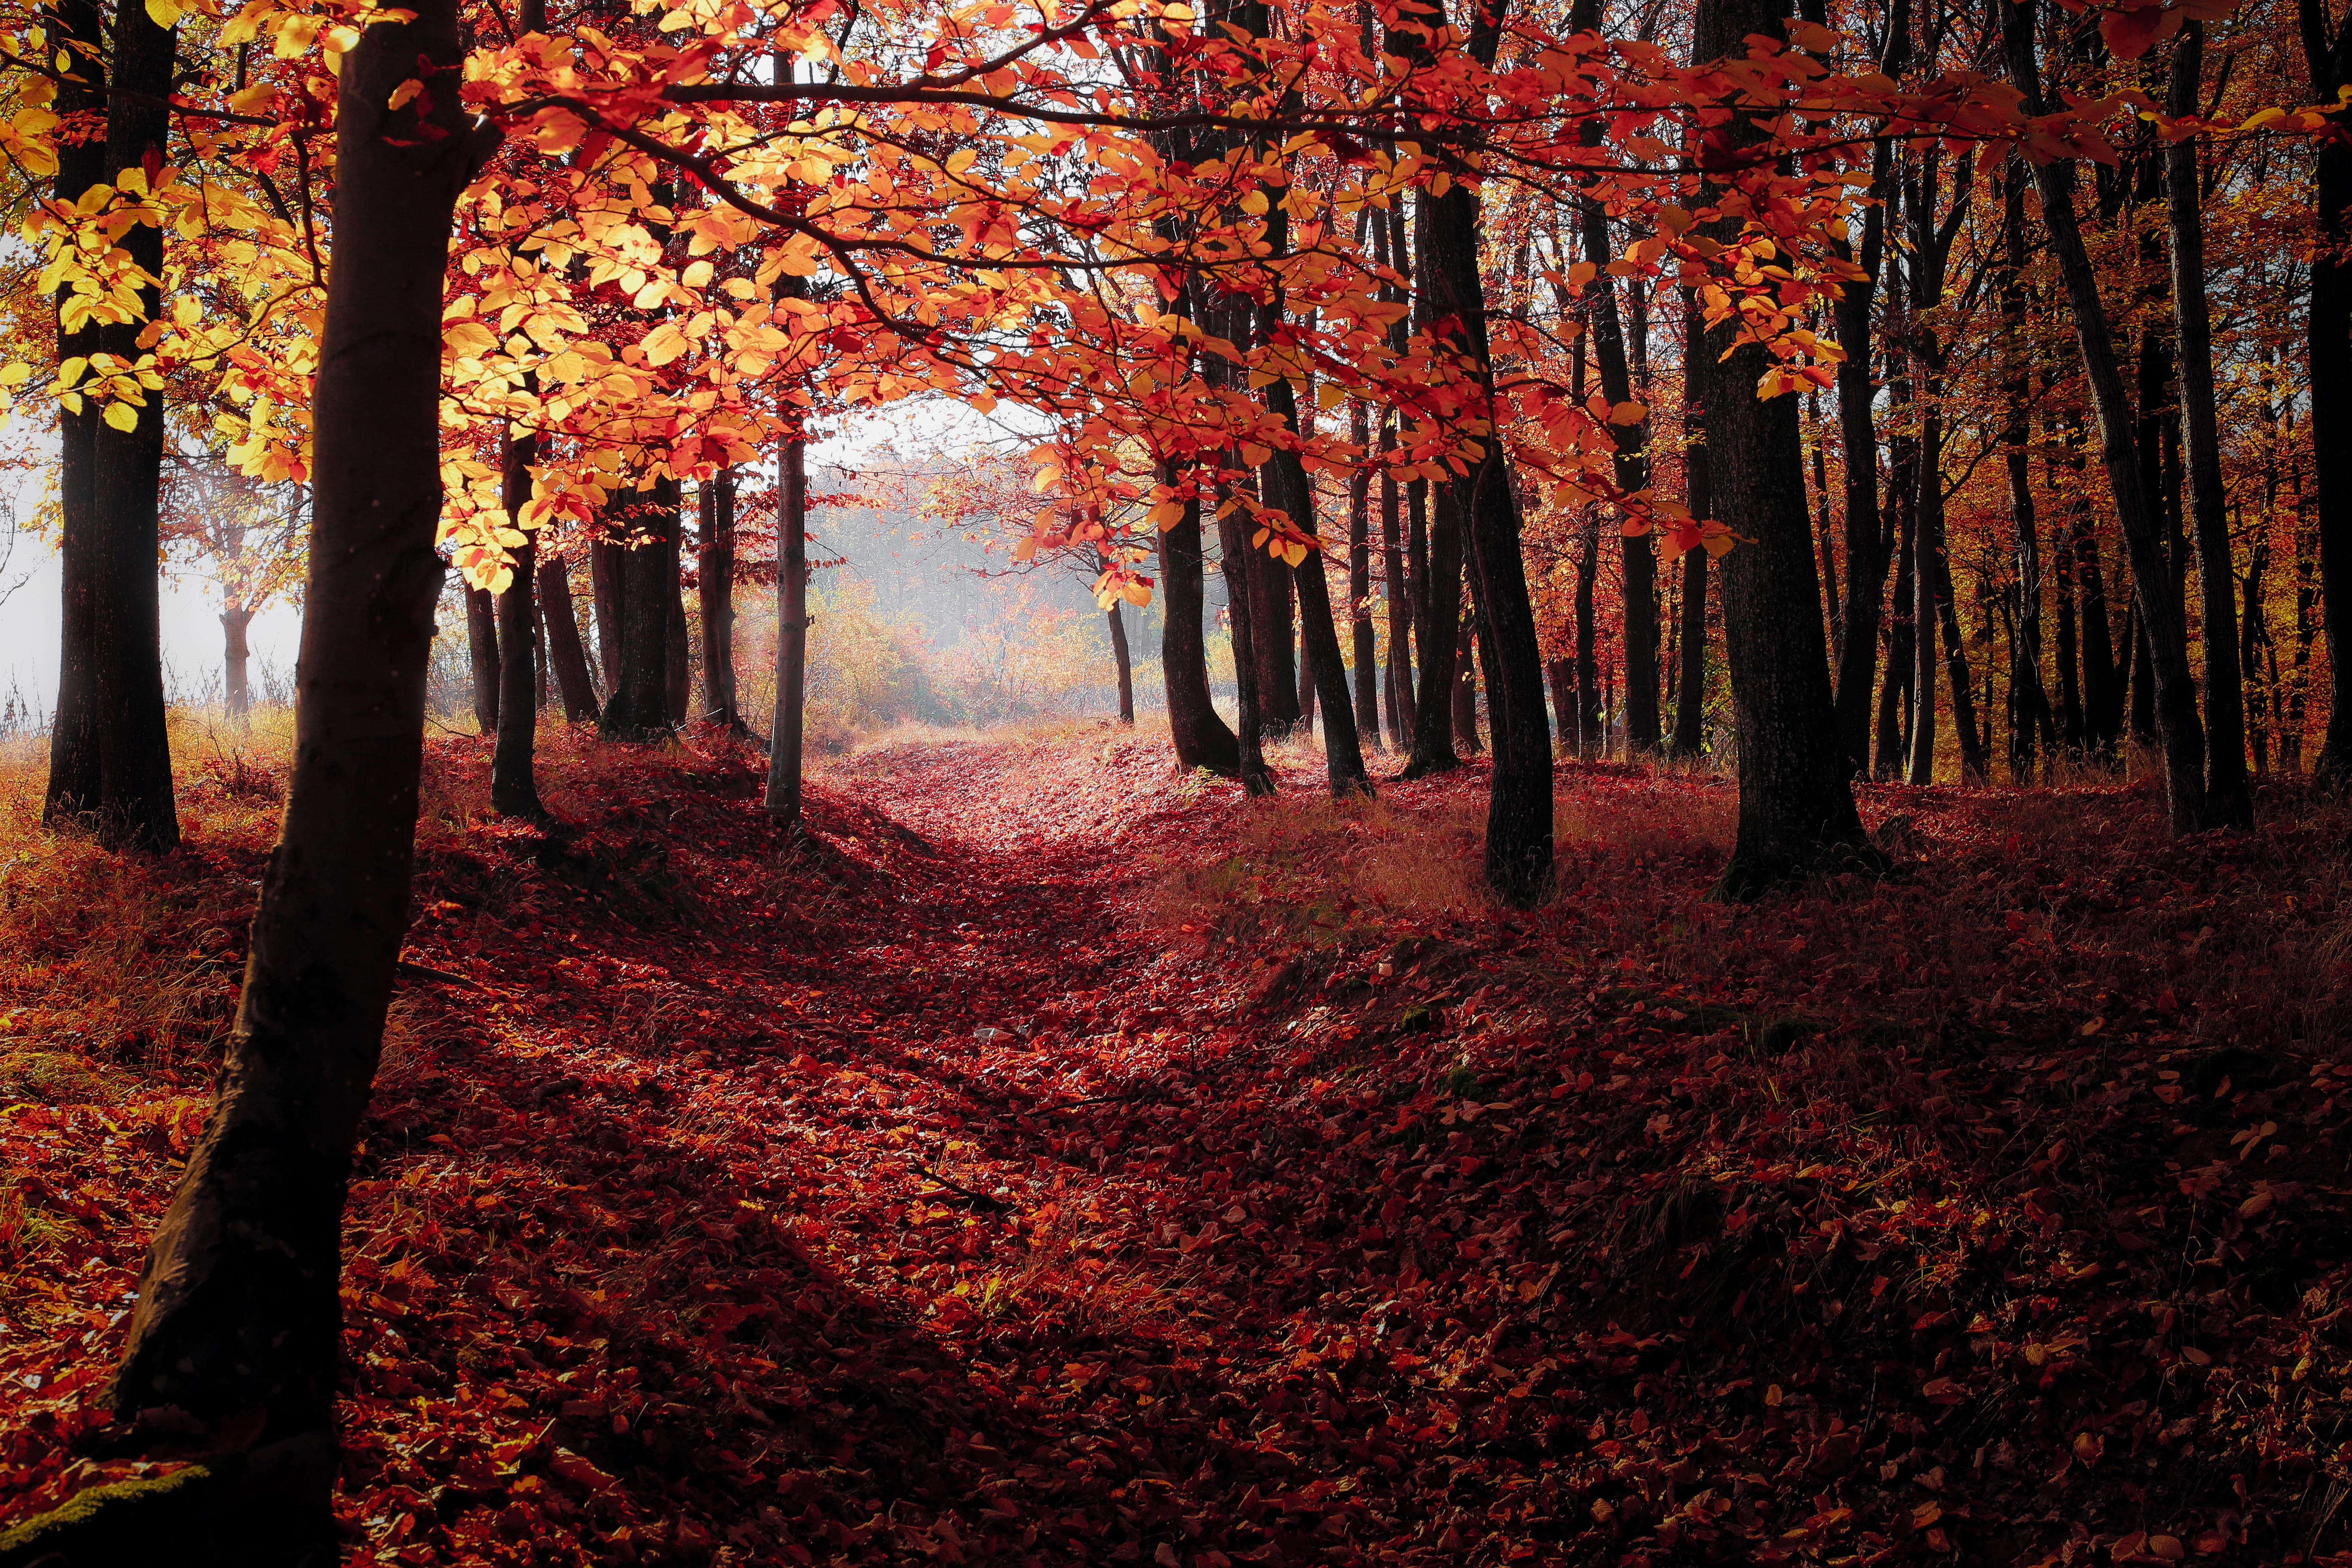 Autumn woods photo